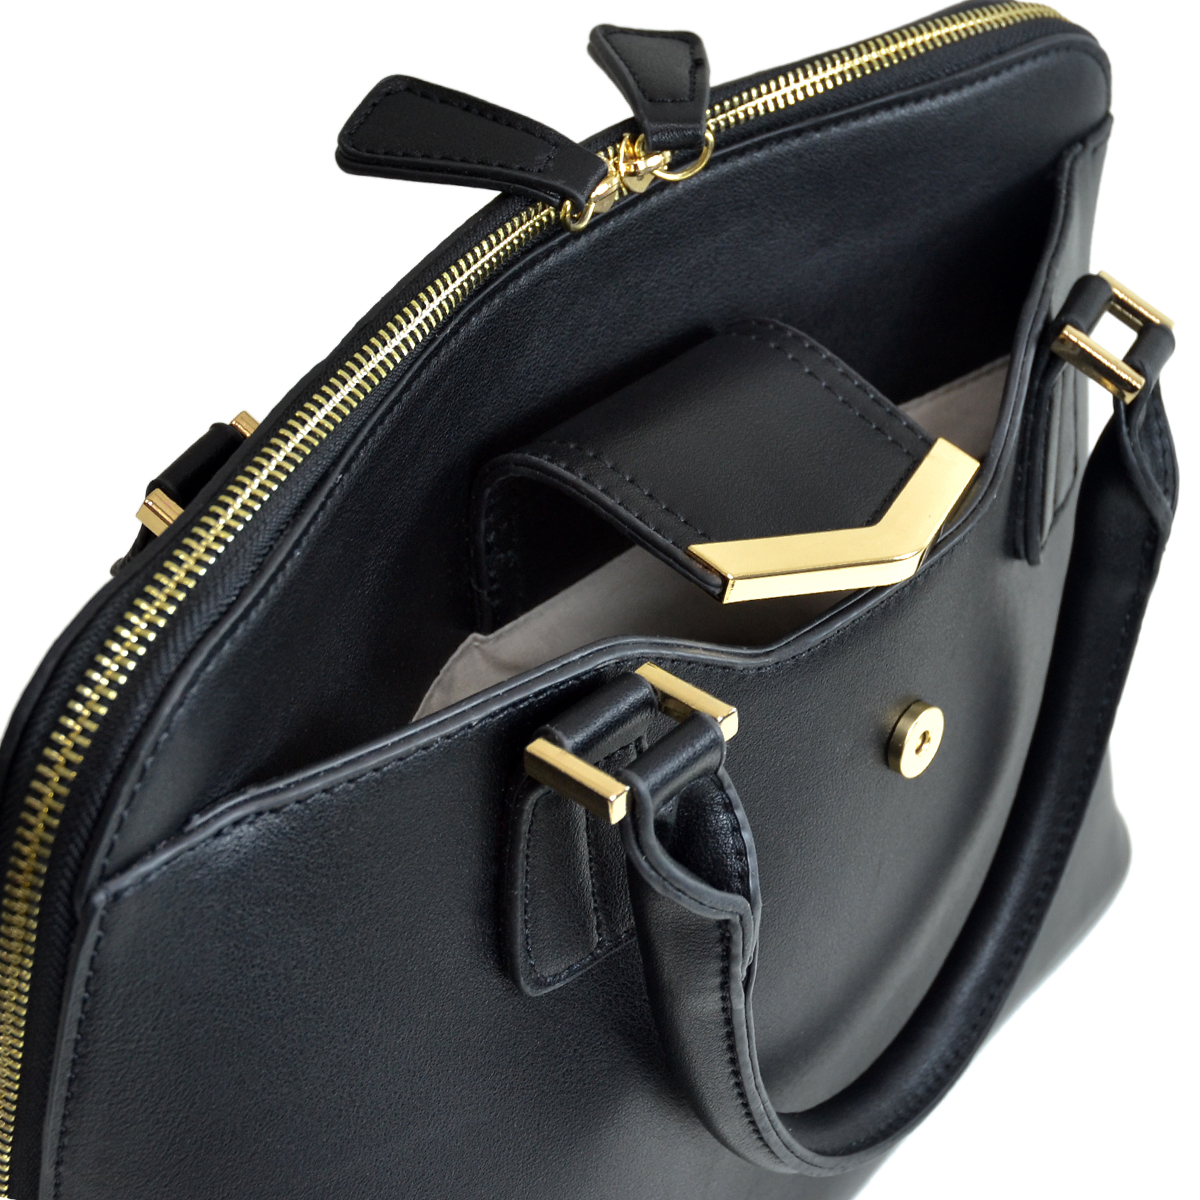 Medium Satchel with Decorative Front Gold Plated Hinge